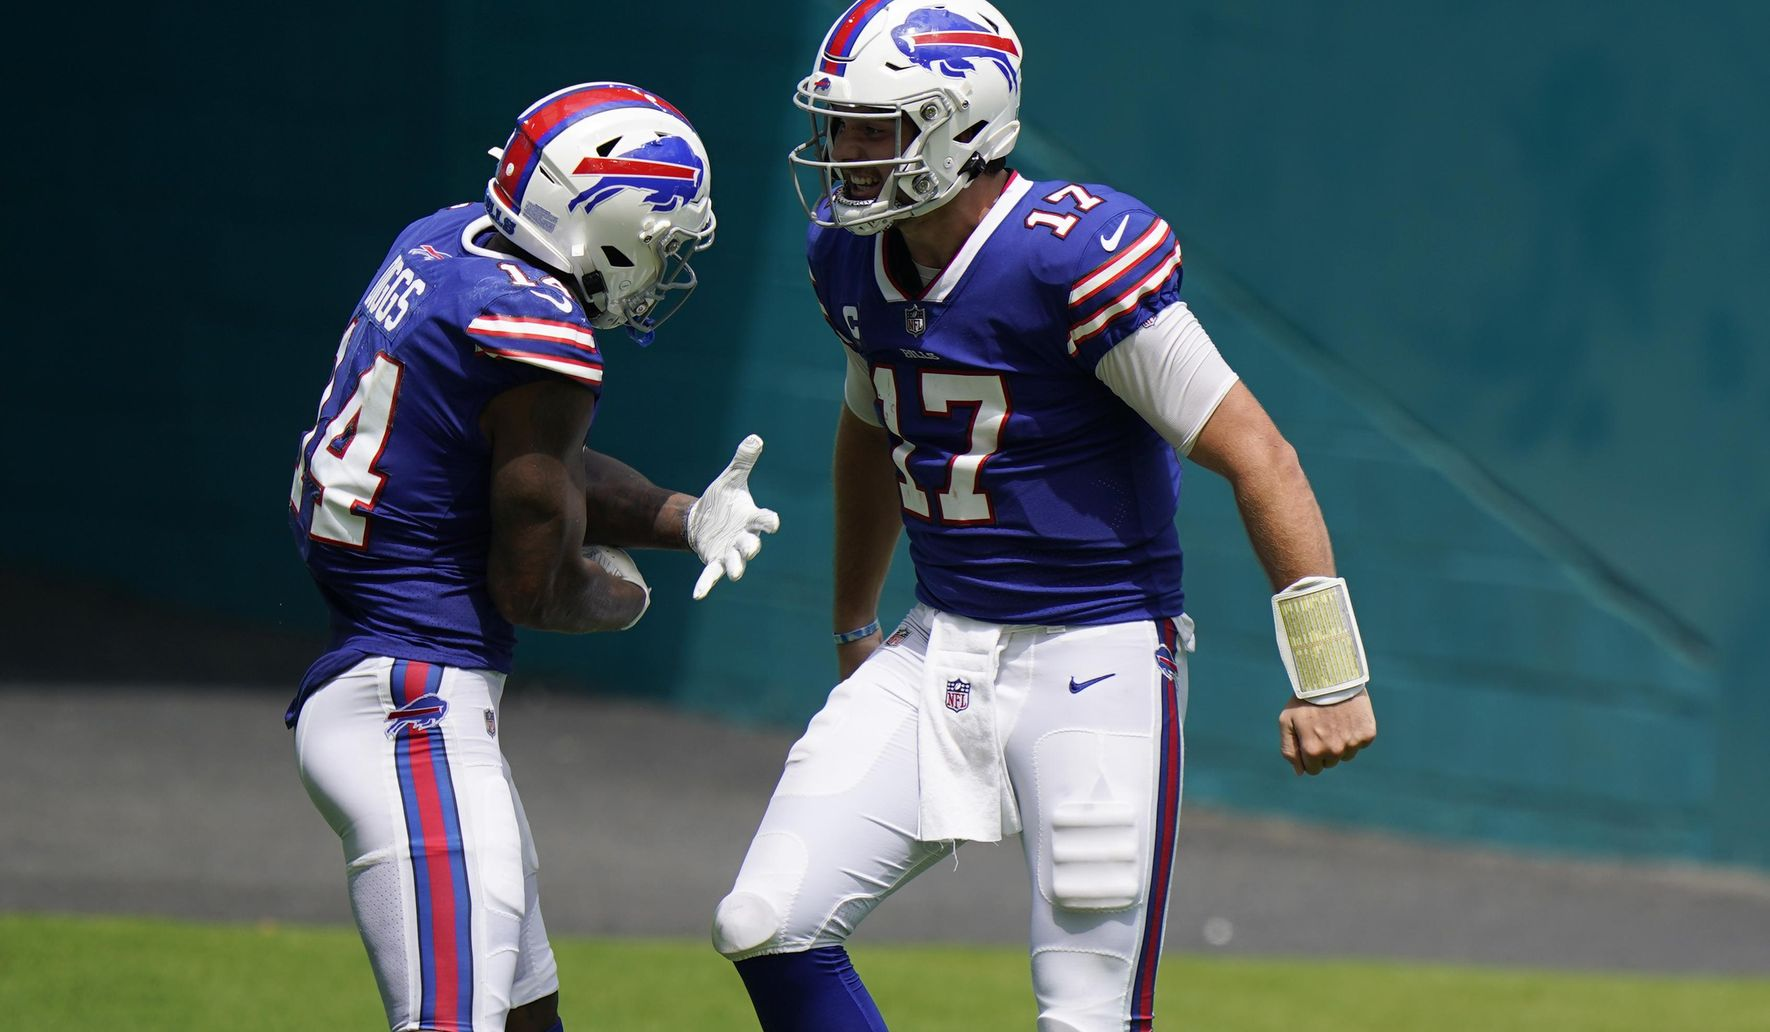 Bills_dolphins_football_75717_c0-142-3394-2120_s1770x1032